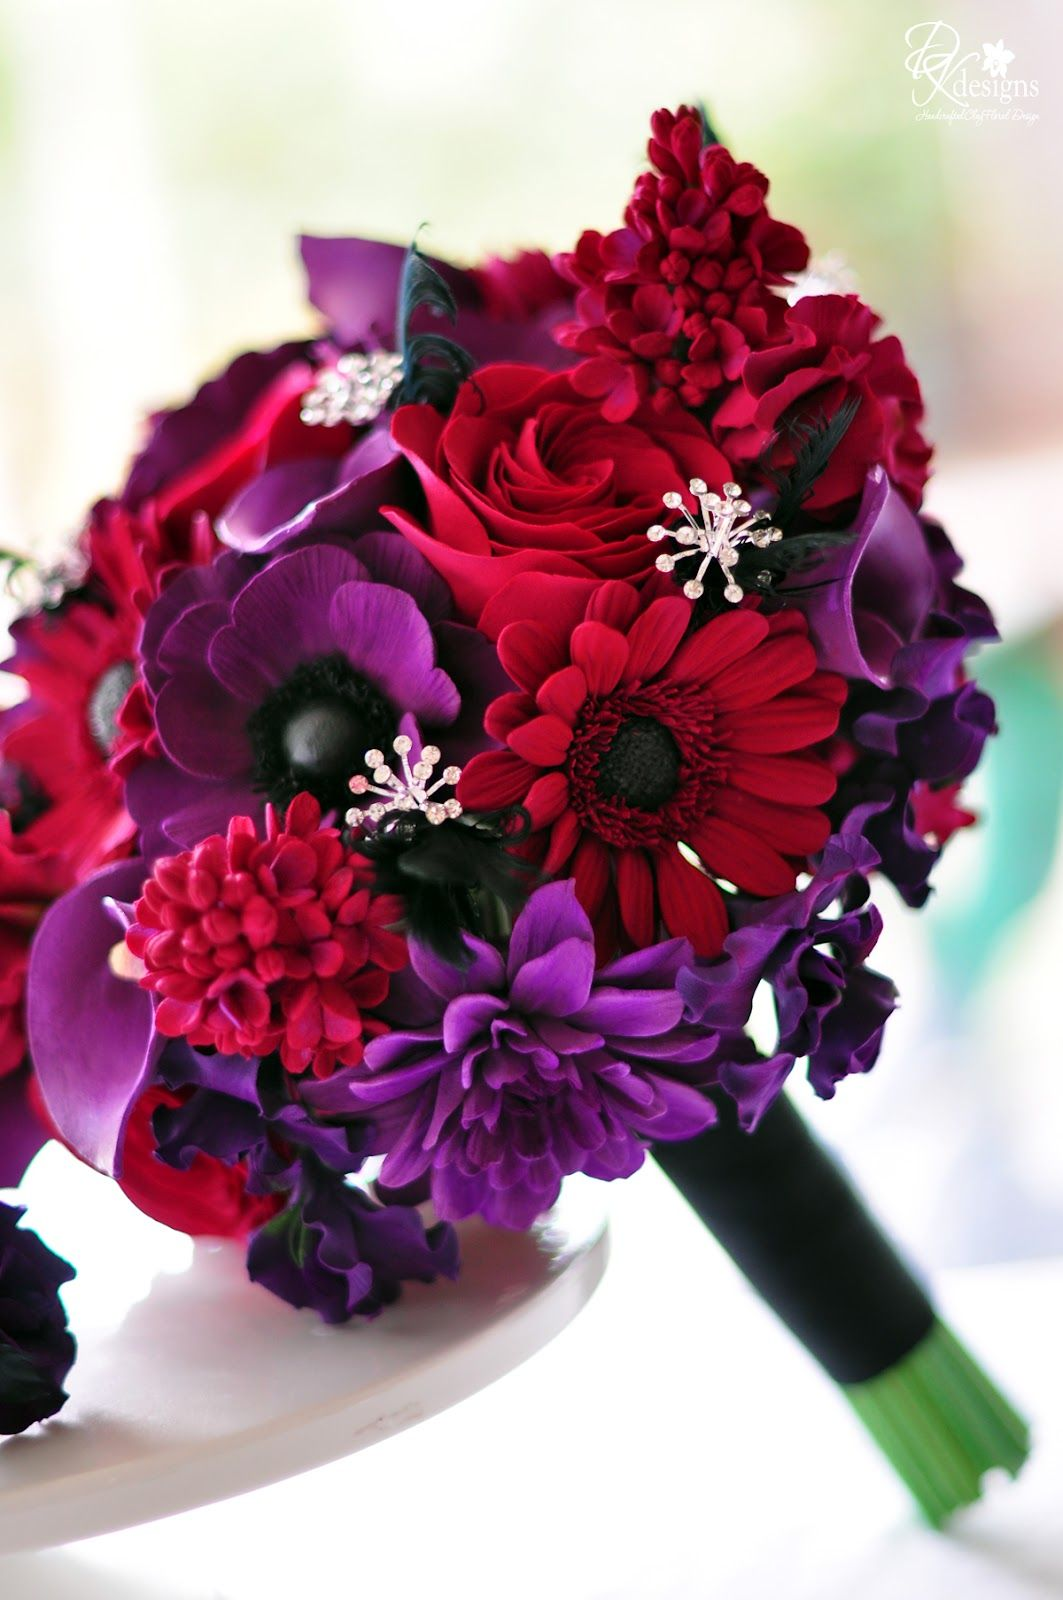 DK Designs: 1920s Vintage Glam Inspired Wedding Flowers   They said ...